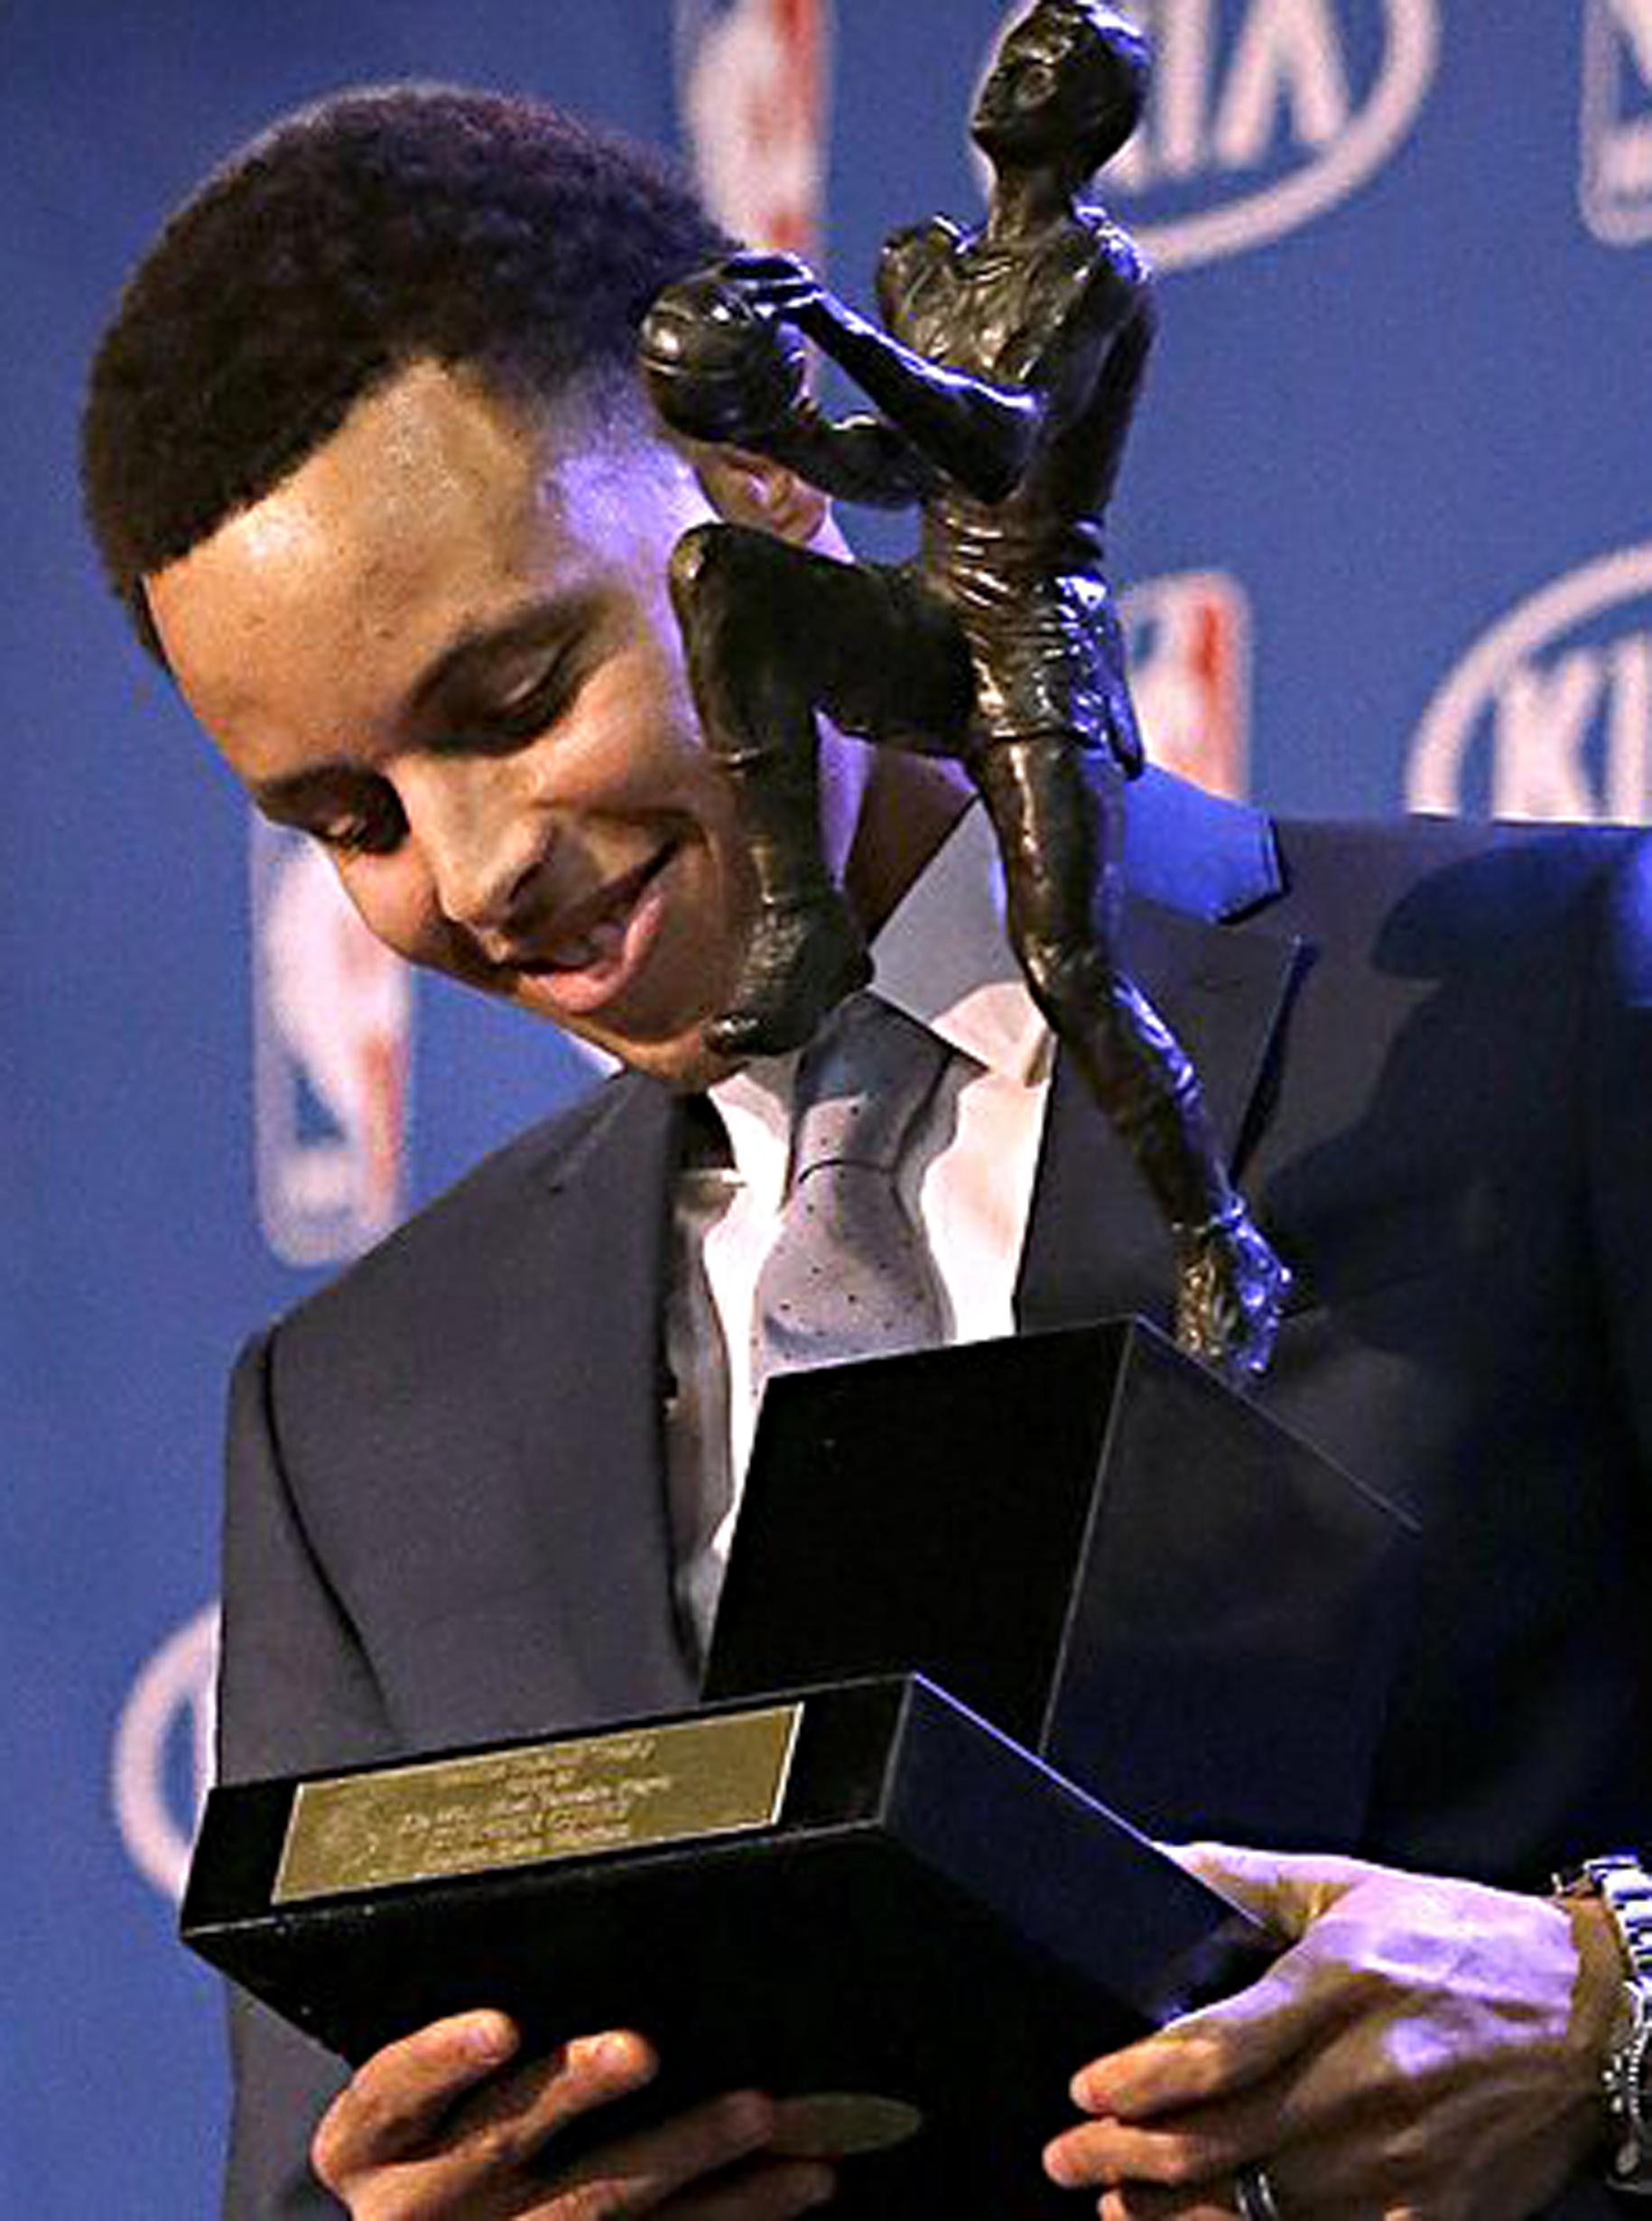 5bc707df9f08422c87ea_Steph_Curry.jpg